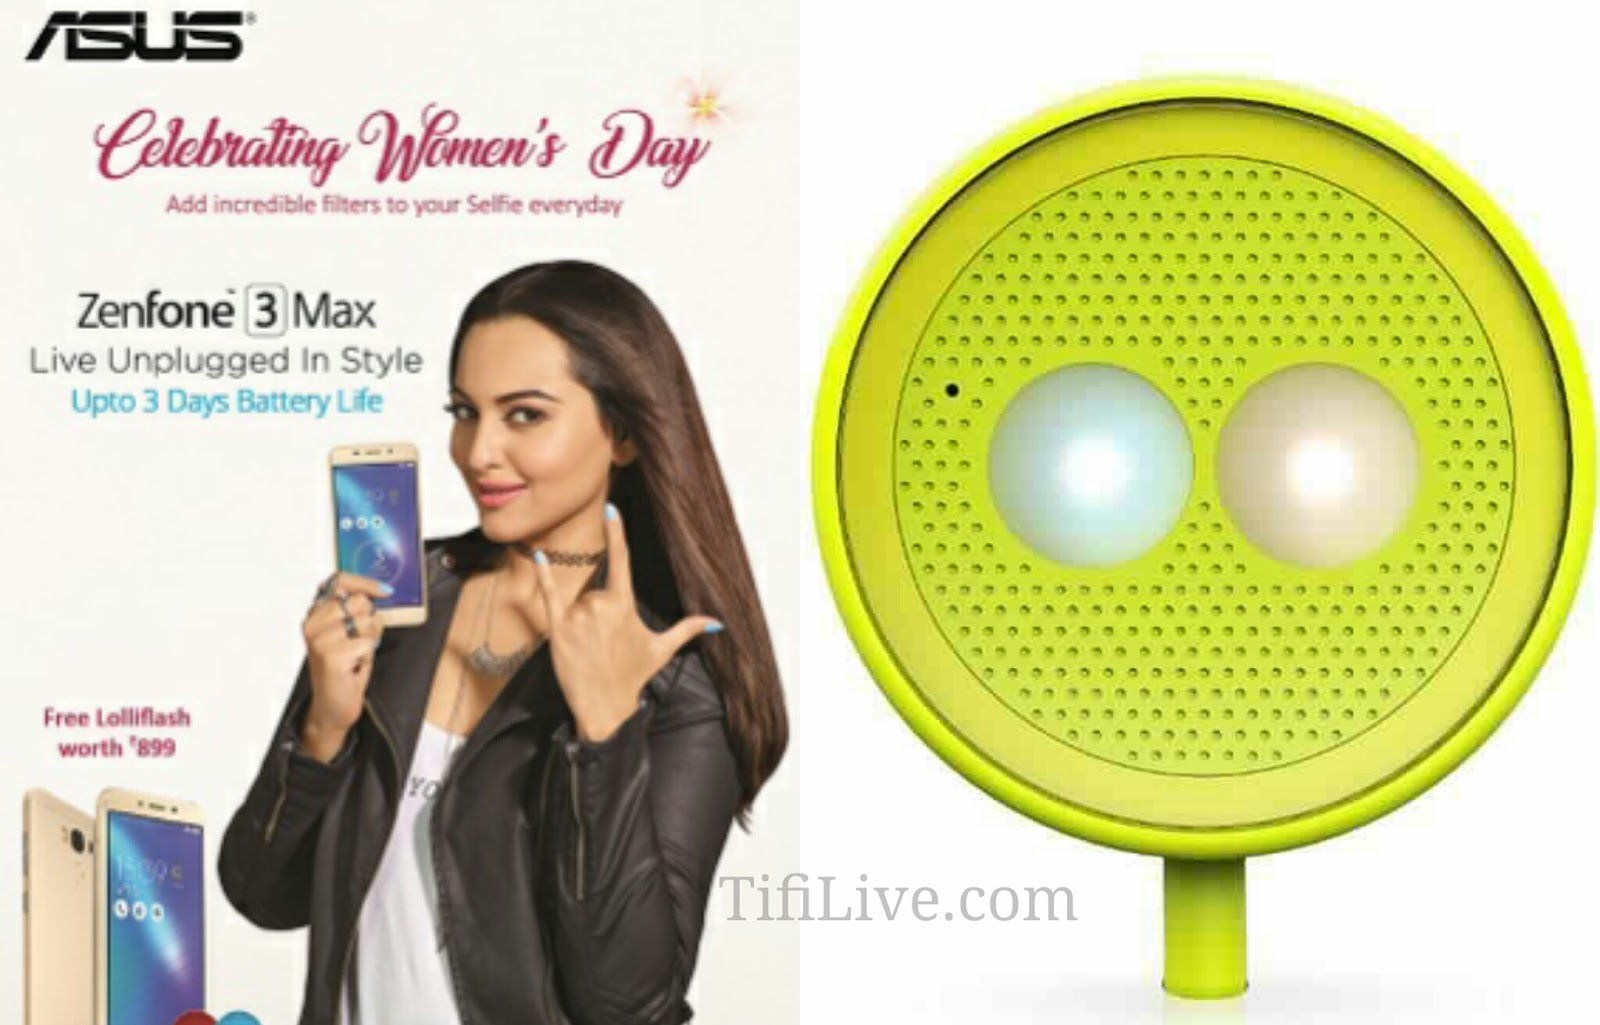 Asus Gifting Lolliflash with the purchase of Zenfone 3 Max series As the part of Women's Day Celebration